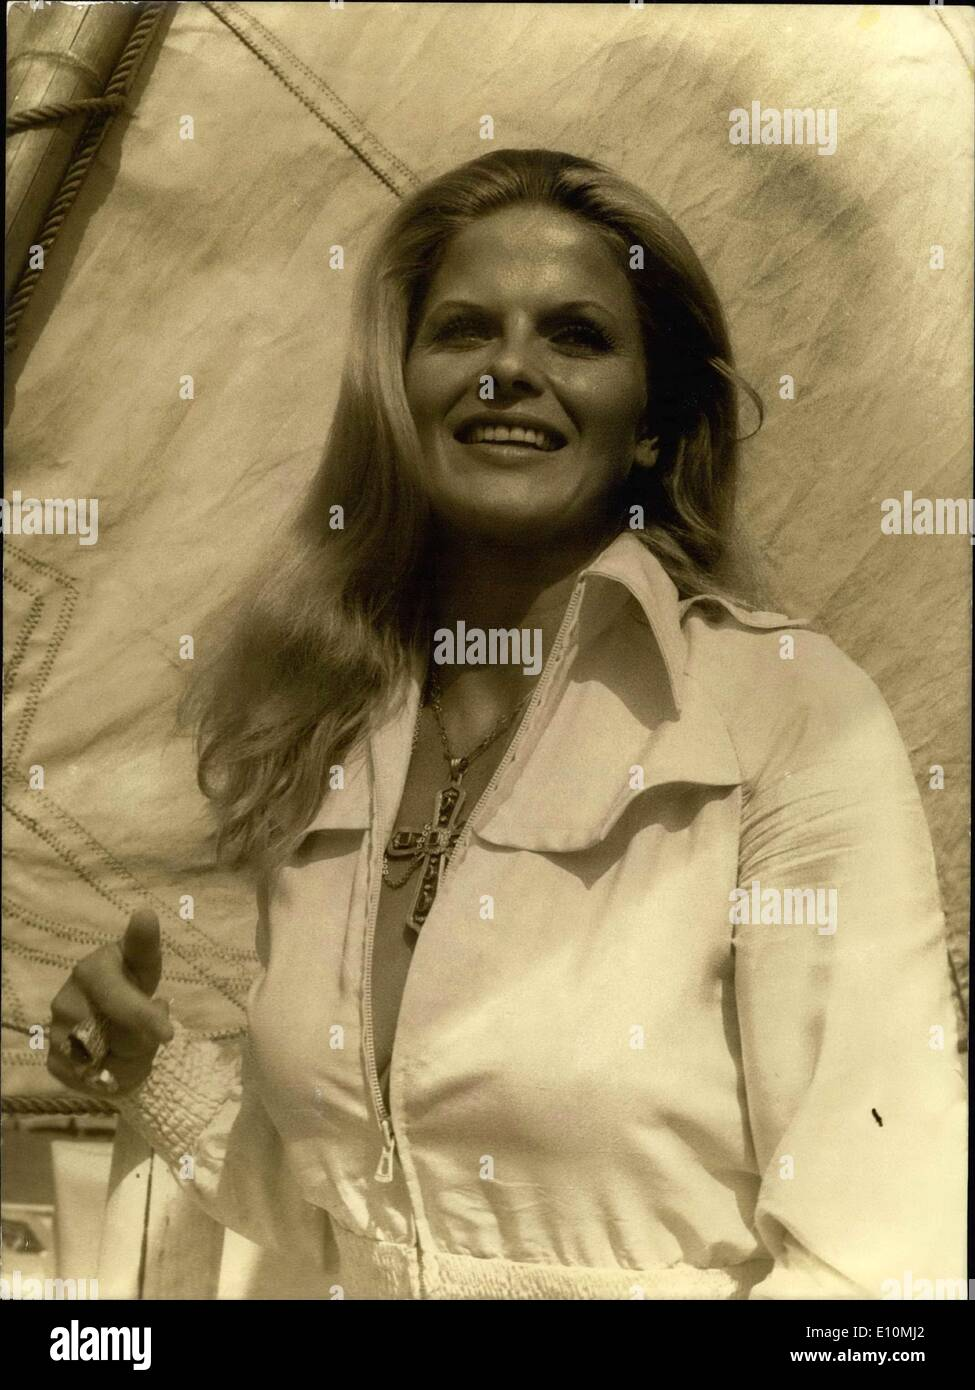 Jul. 16, 1973 - Karin Schubert, the star of ''La Punition,'' directed by Pierre-Alain Jolivet, came to spend a few days on the French Riviera. Here she is walking on the ''Siesta'' in Antibes. - Stock Image